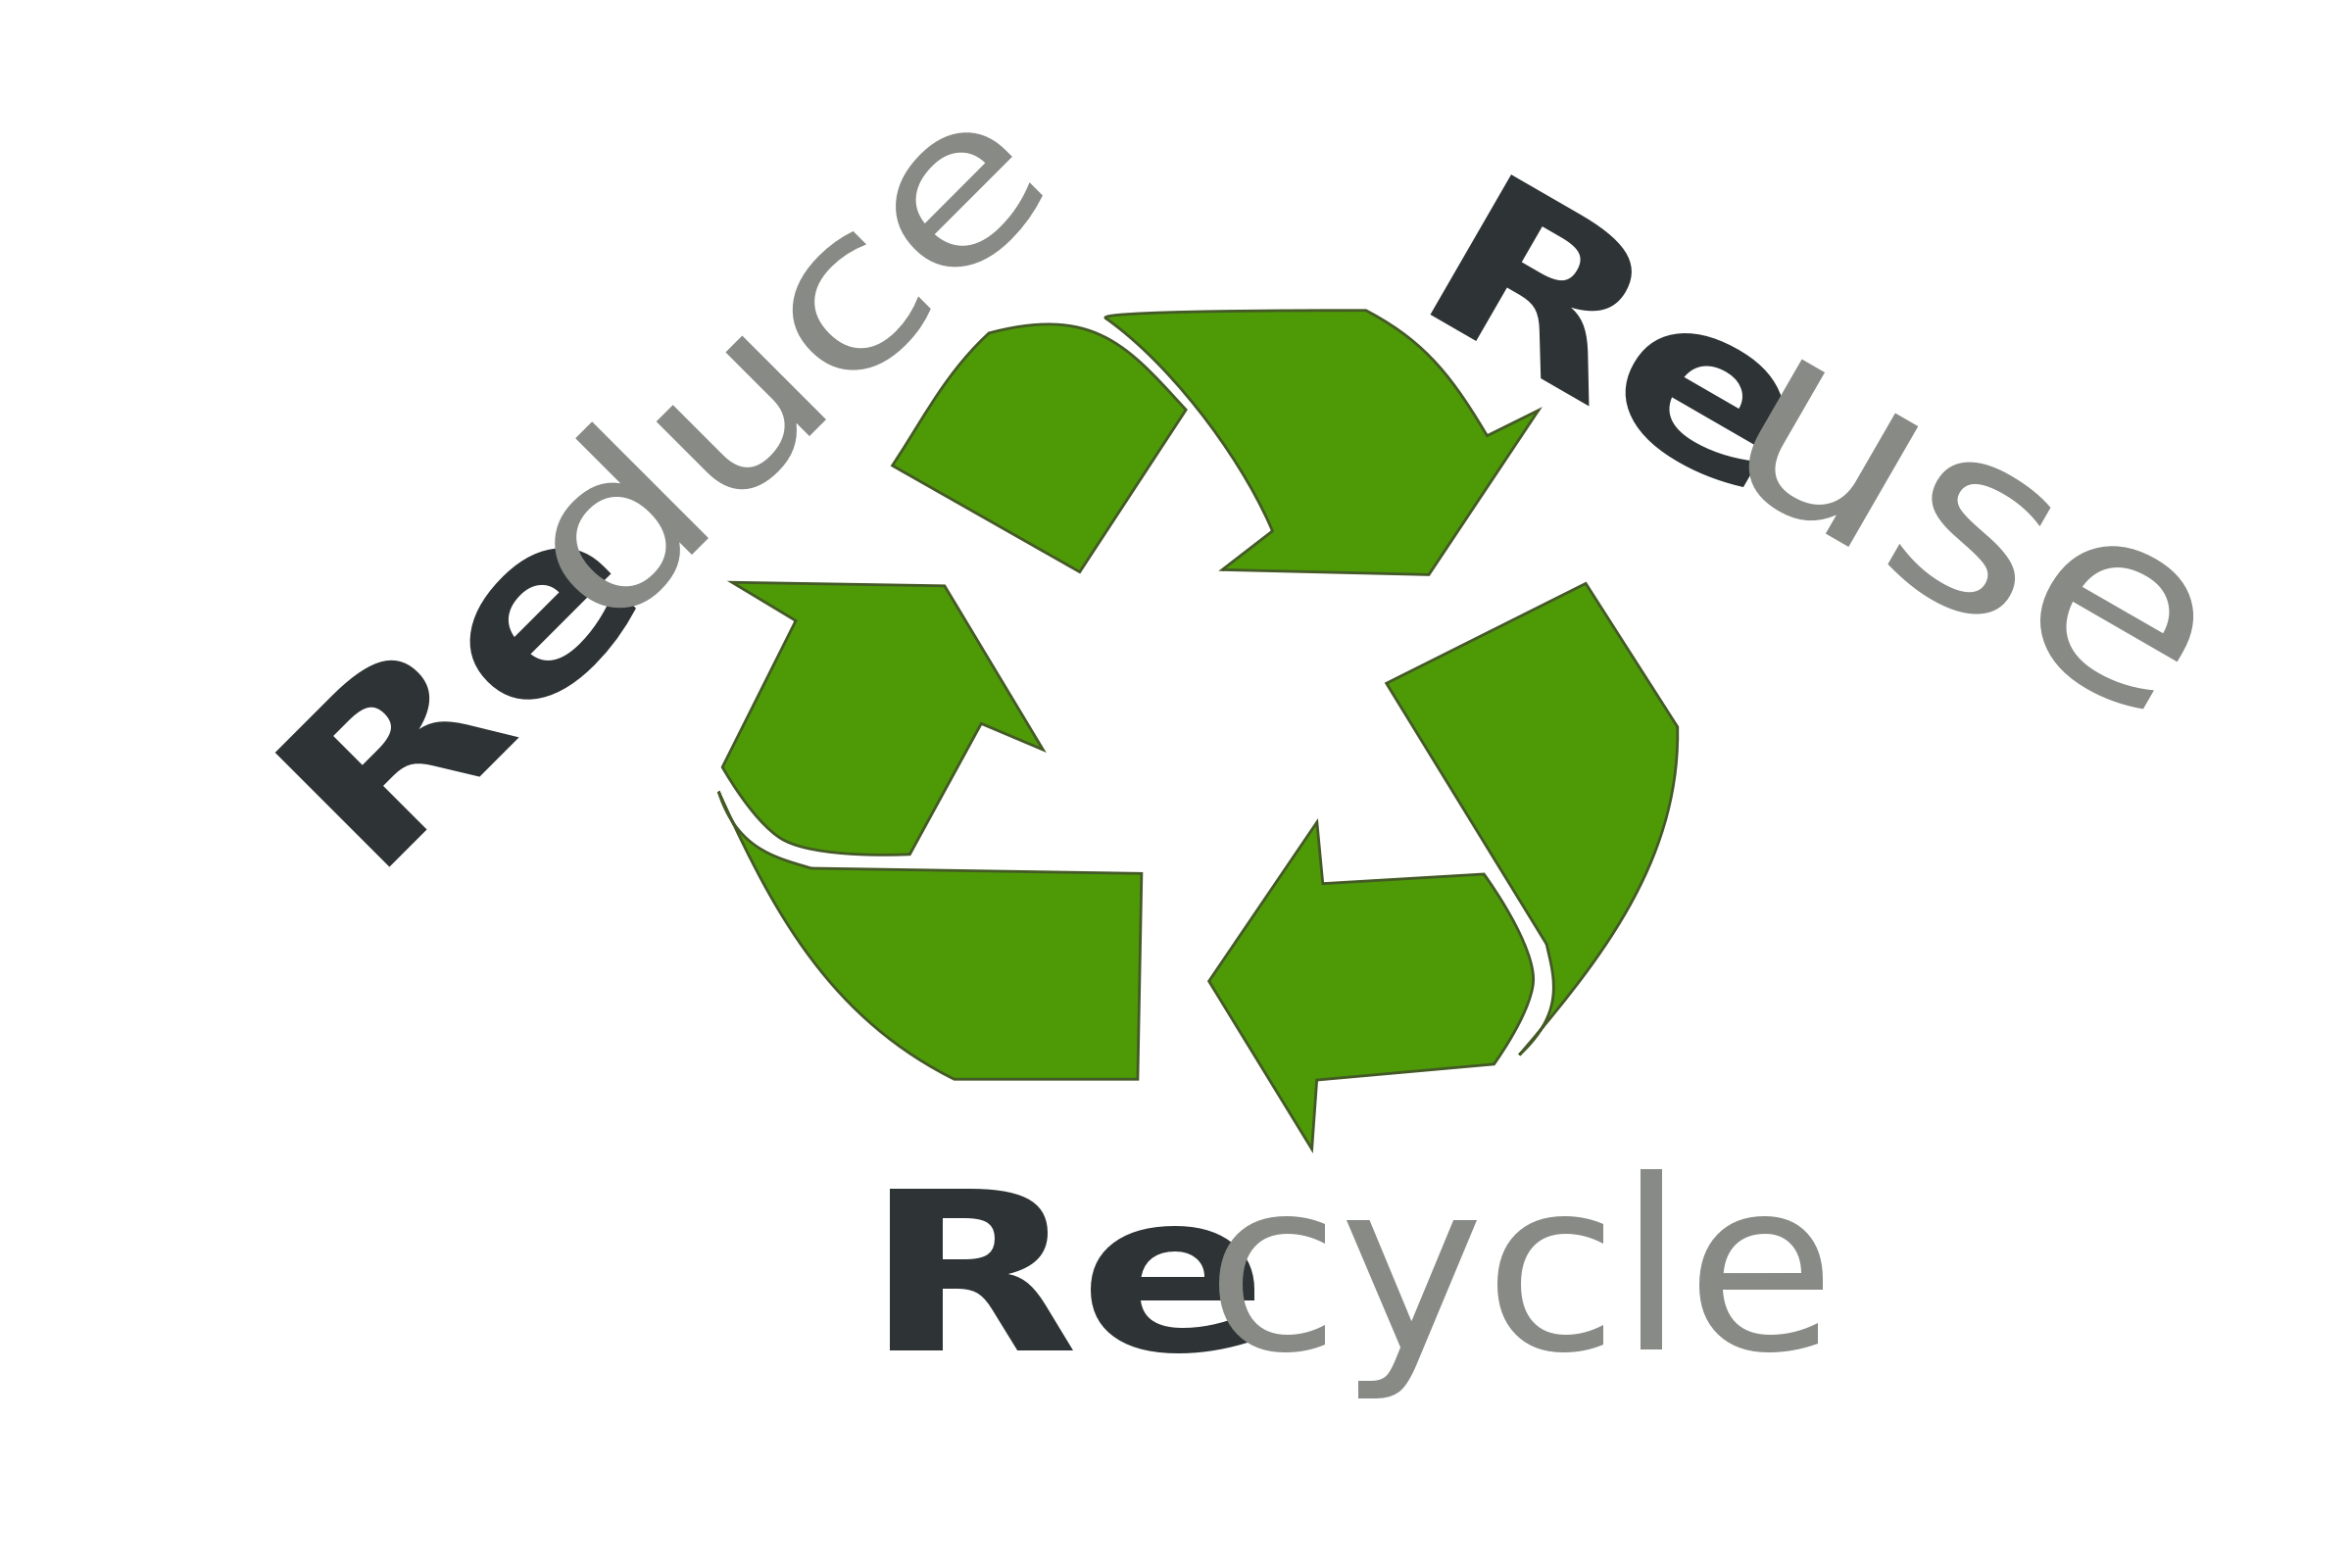 Reduce reuse recycle png. Make every day earth